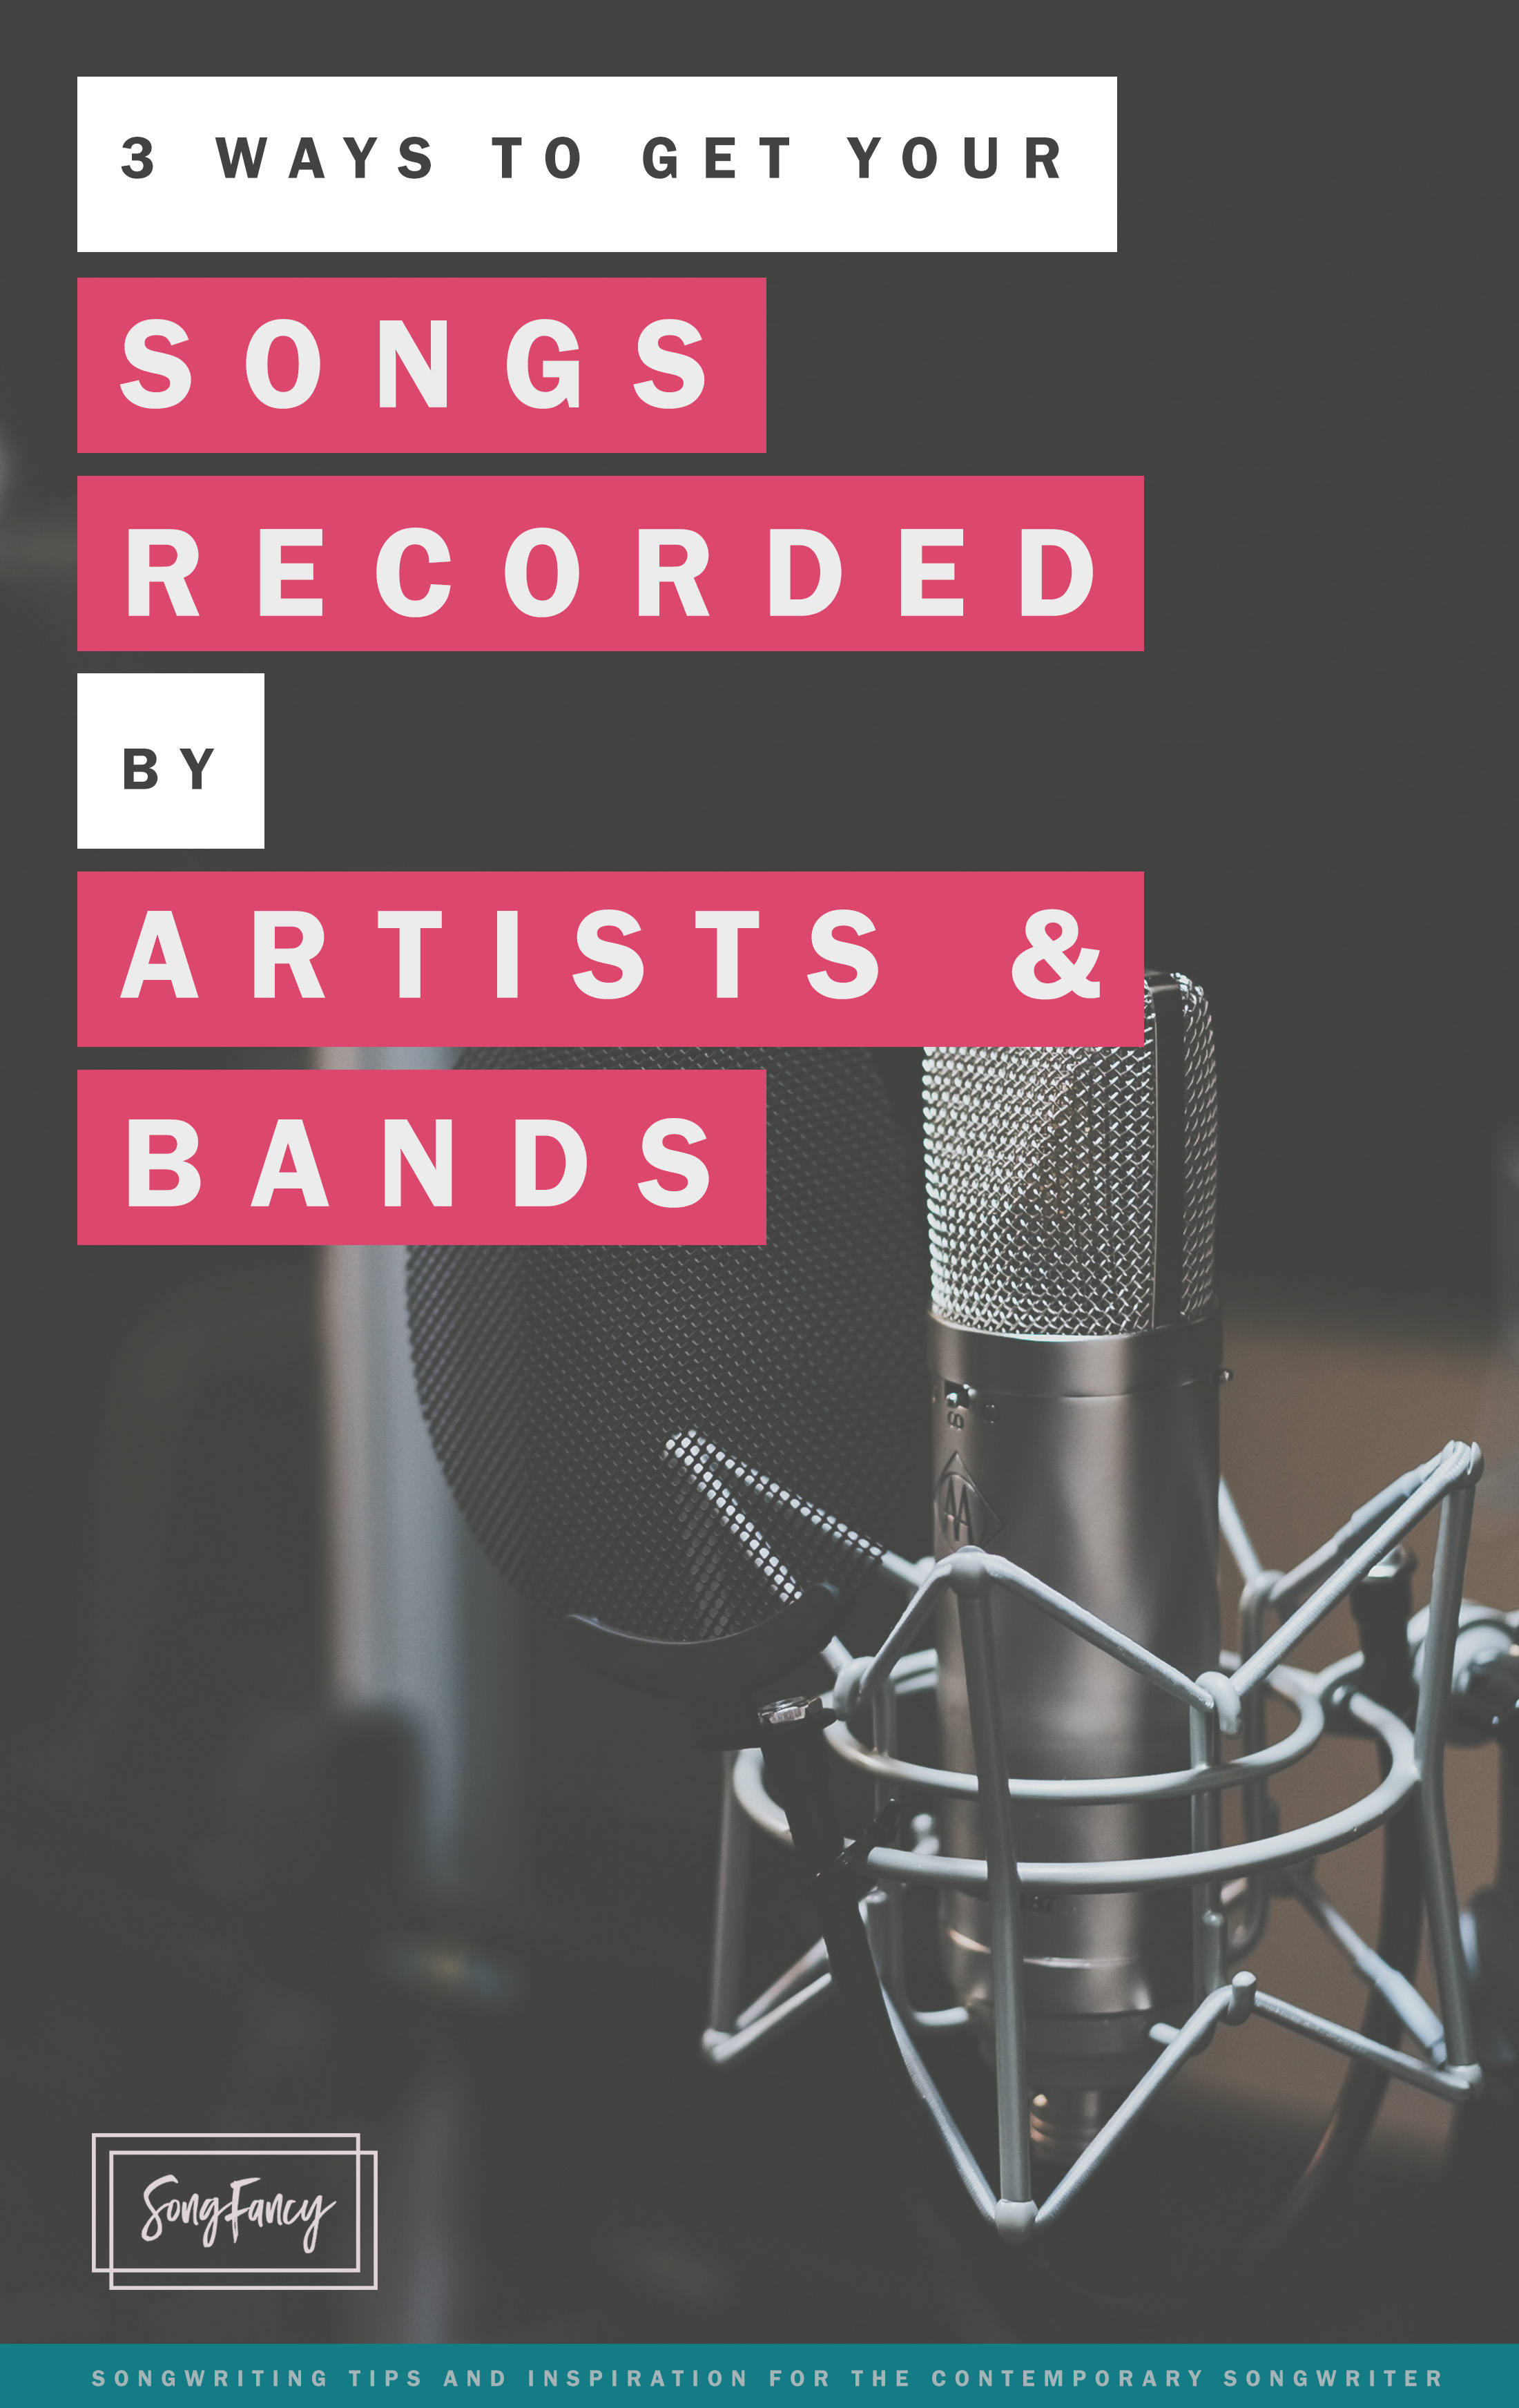 Three simple ways to get your songs recorded by singers and bands. Read on | SongFancy.com